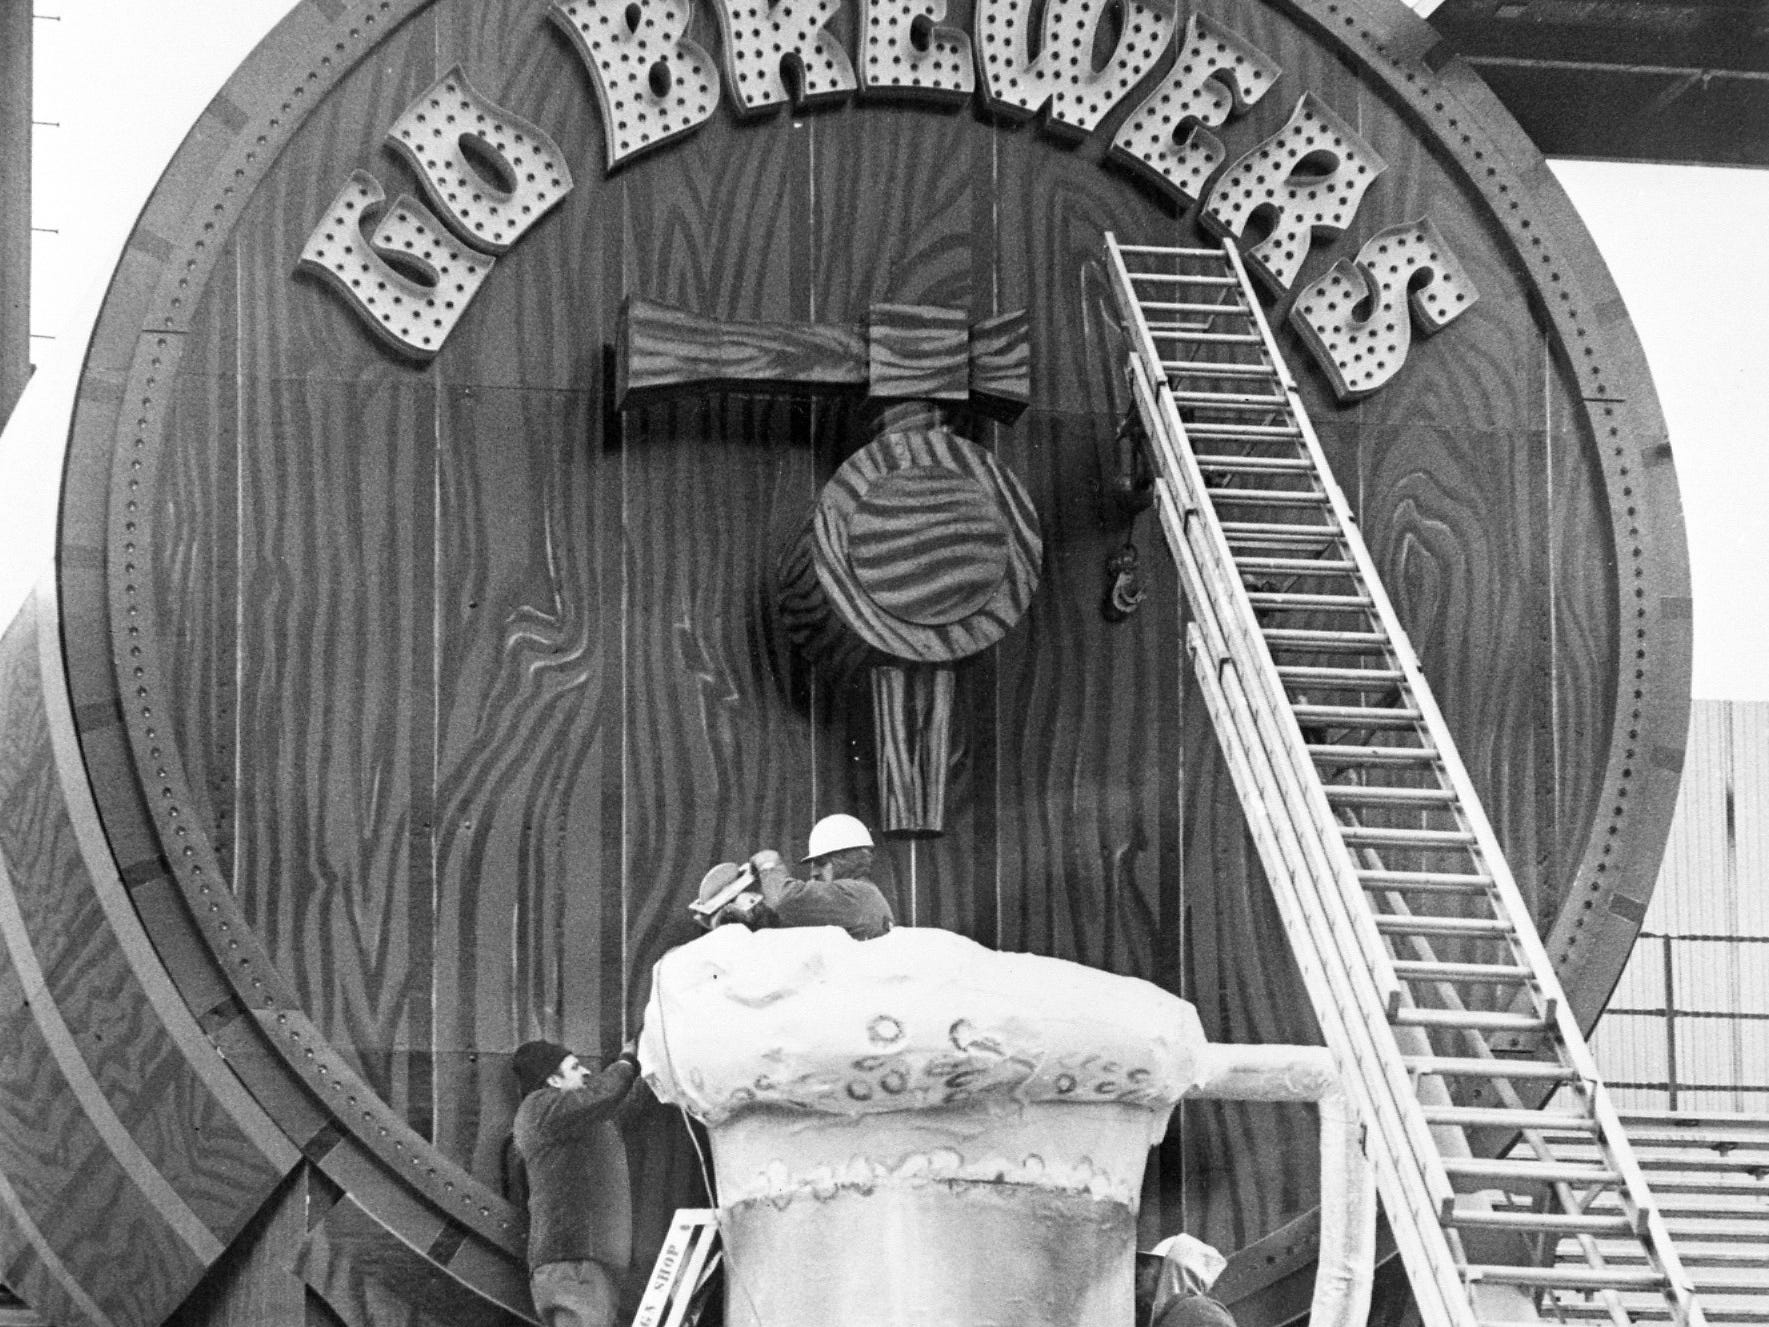 Workers set up the giant beer barrel and mug in the bleachers at County Stadium. At the upper right will be Bernie Brewer's new home, a Bavarian-style chalet, with a slide leading to the beer mug. This photo was published in the April 8, 1973, Milwaukee Journal.